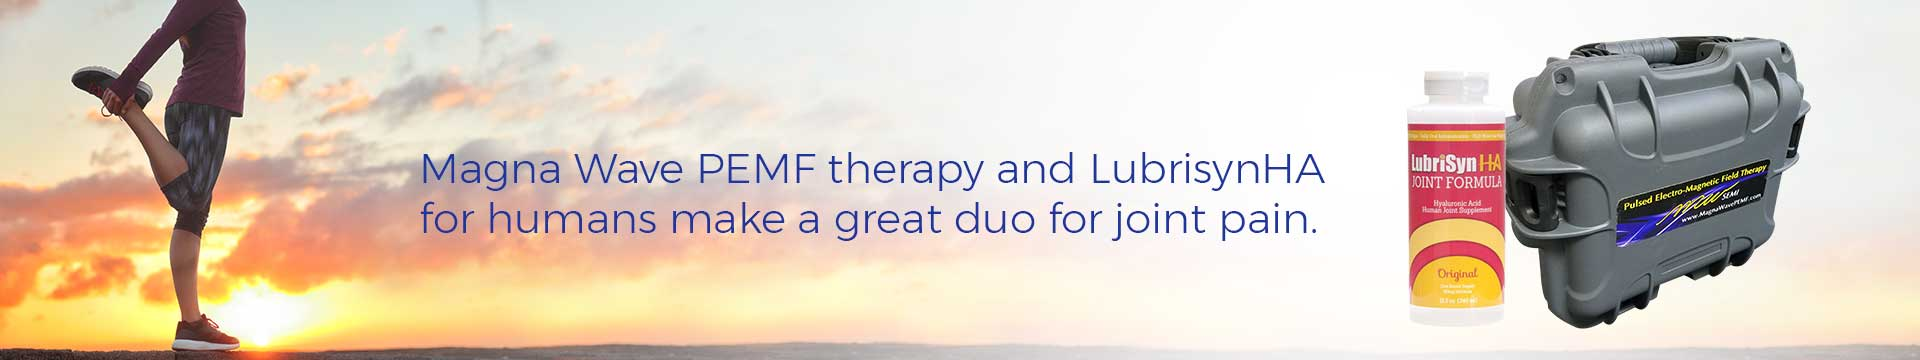 Magna Wave PEMF therapy and LubrisynHA for humans make a great duo for joint pain.